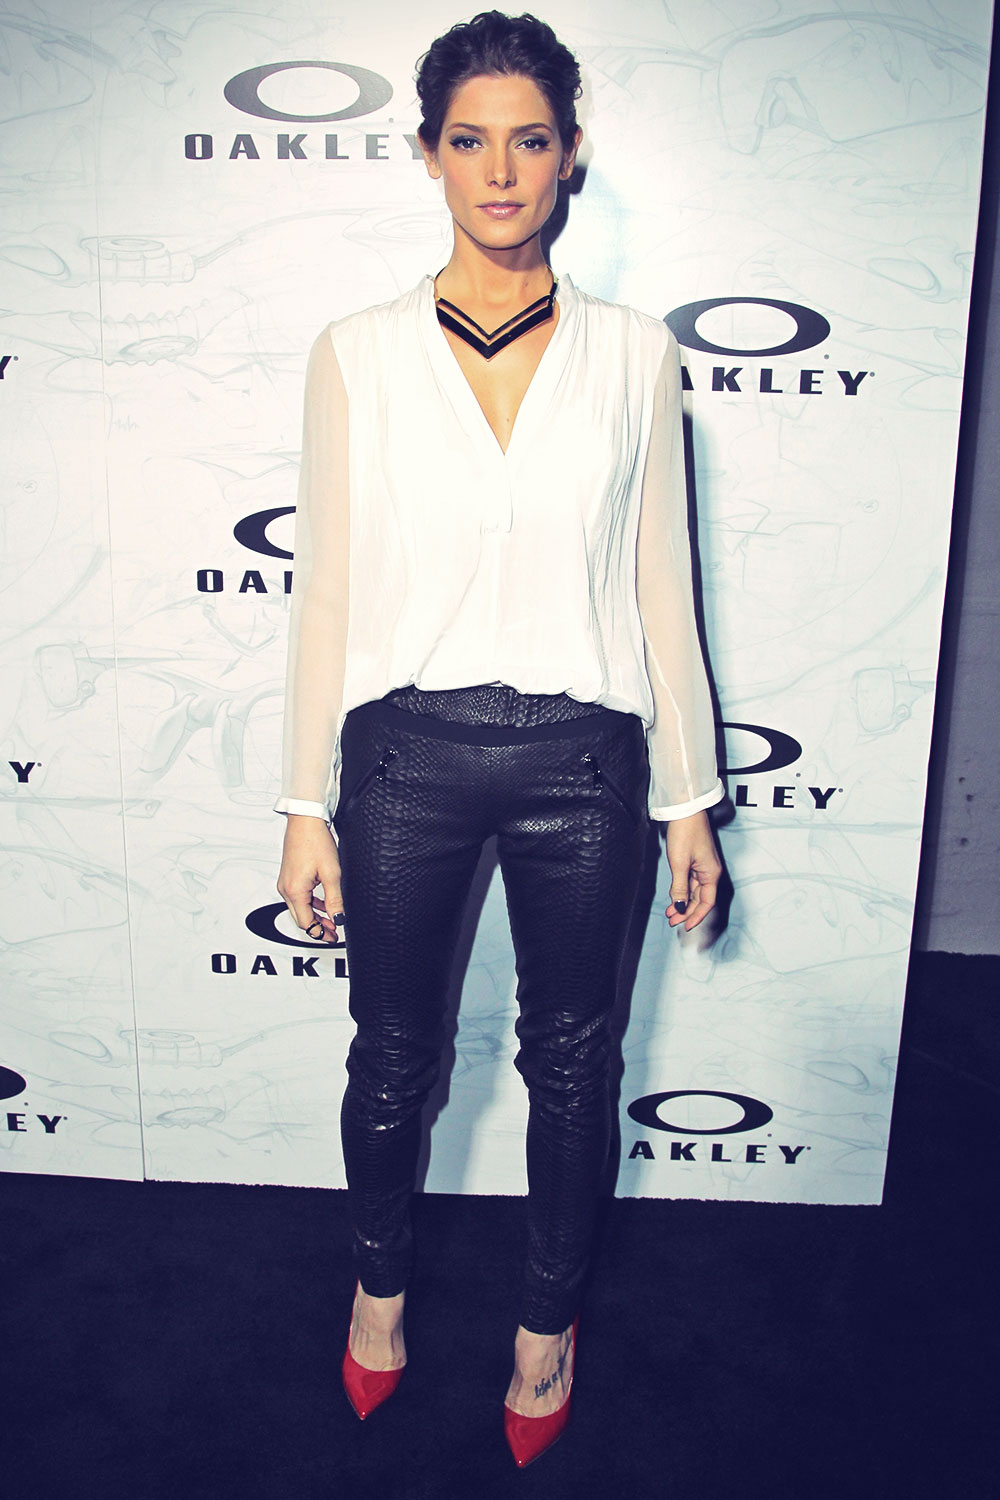 Ashley Greene attends the Oakley's Disruptive By Design Global Campaign Launch